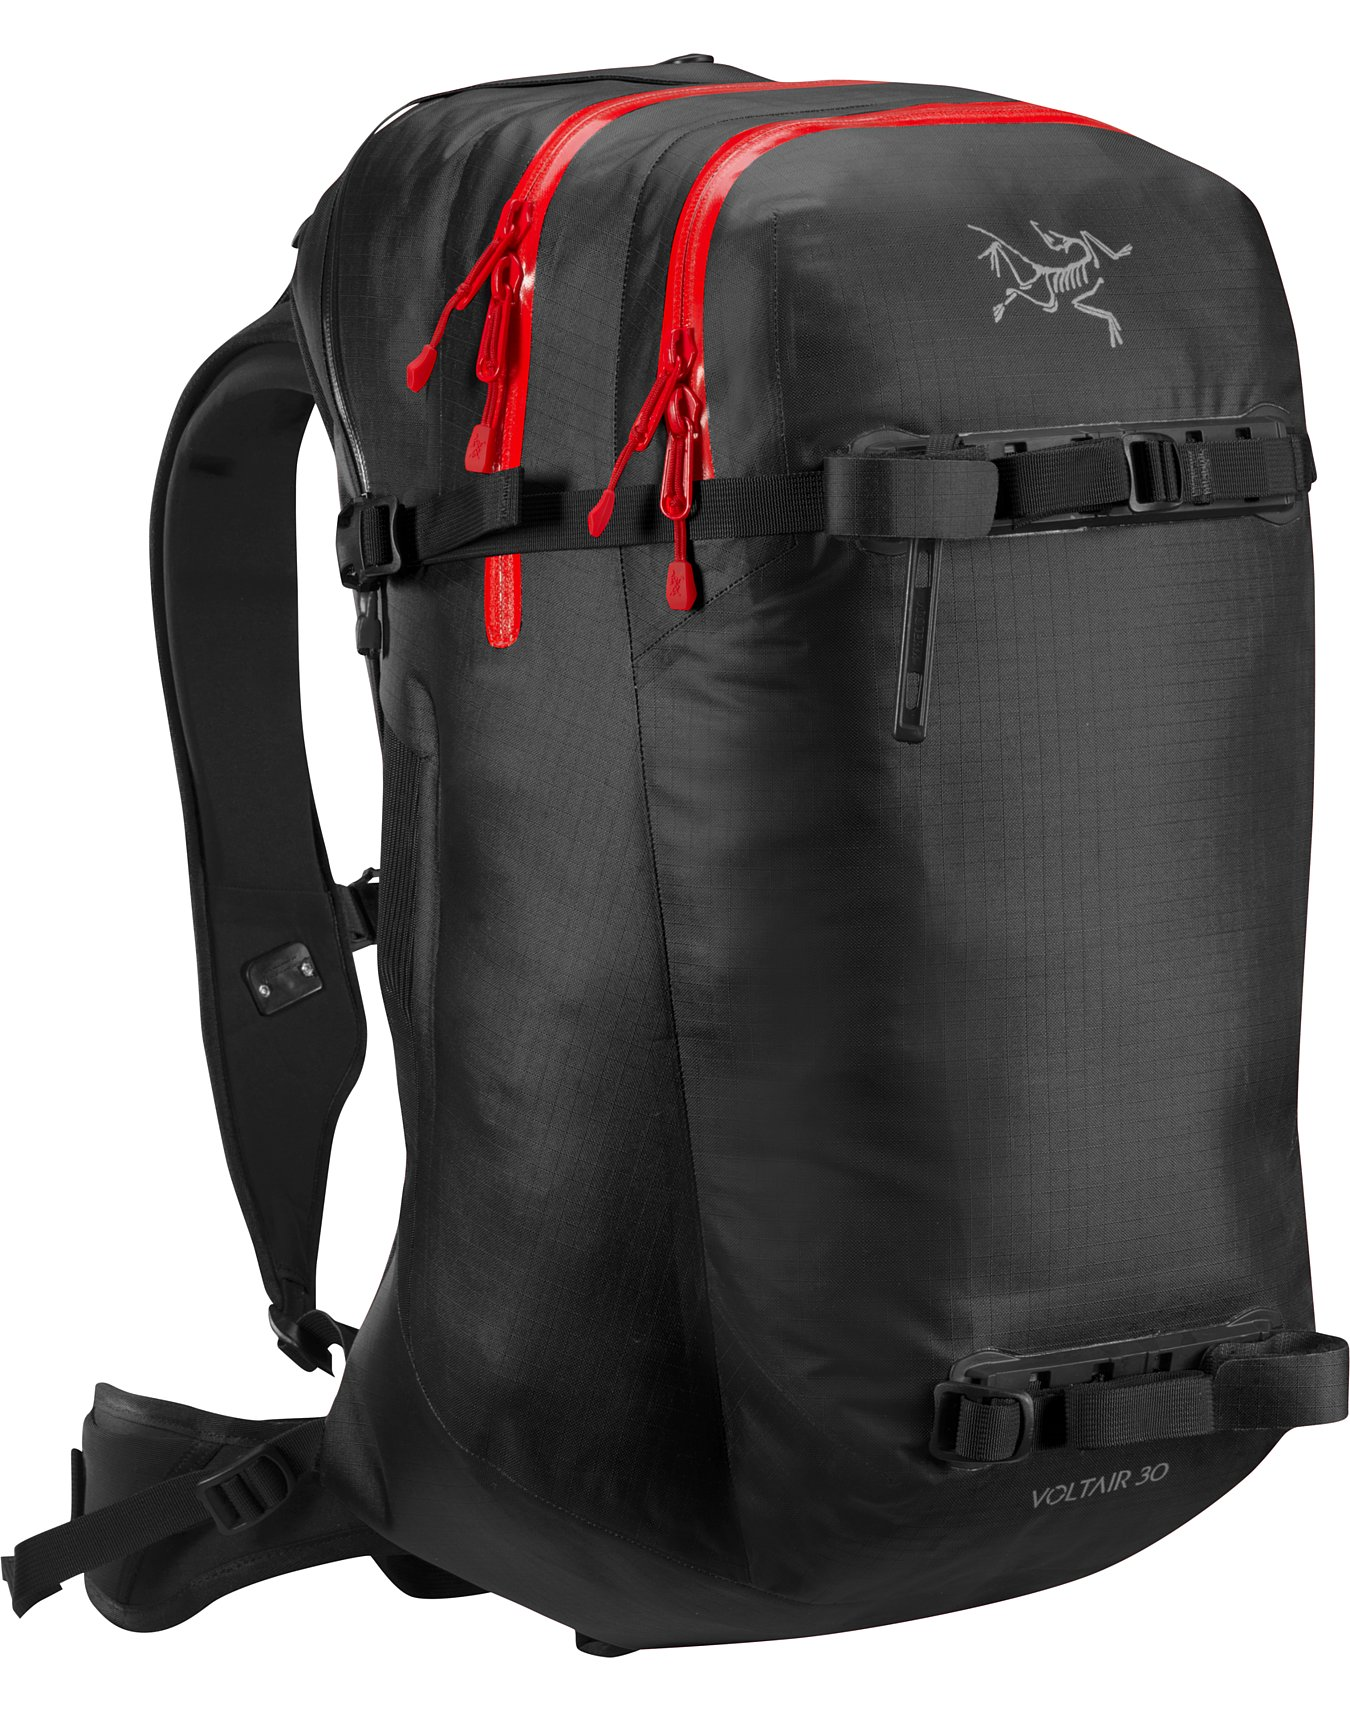 Voltair-30-Backpack-Black.jpg